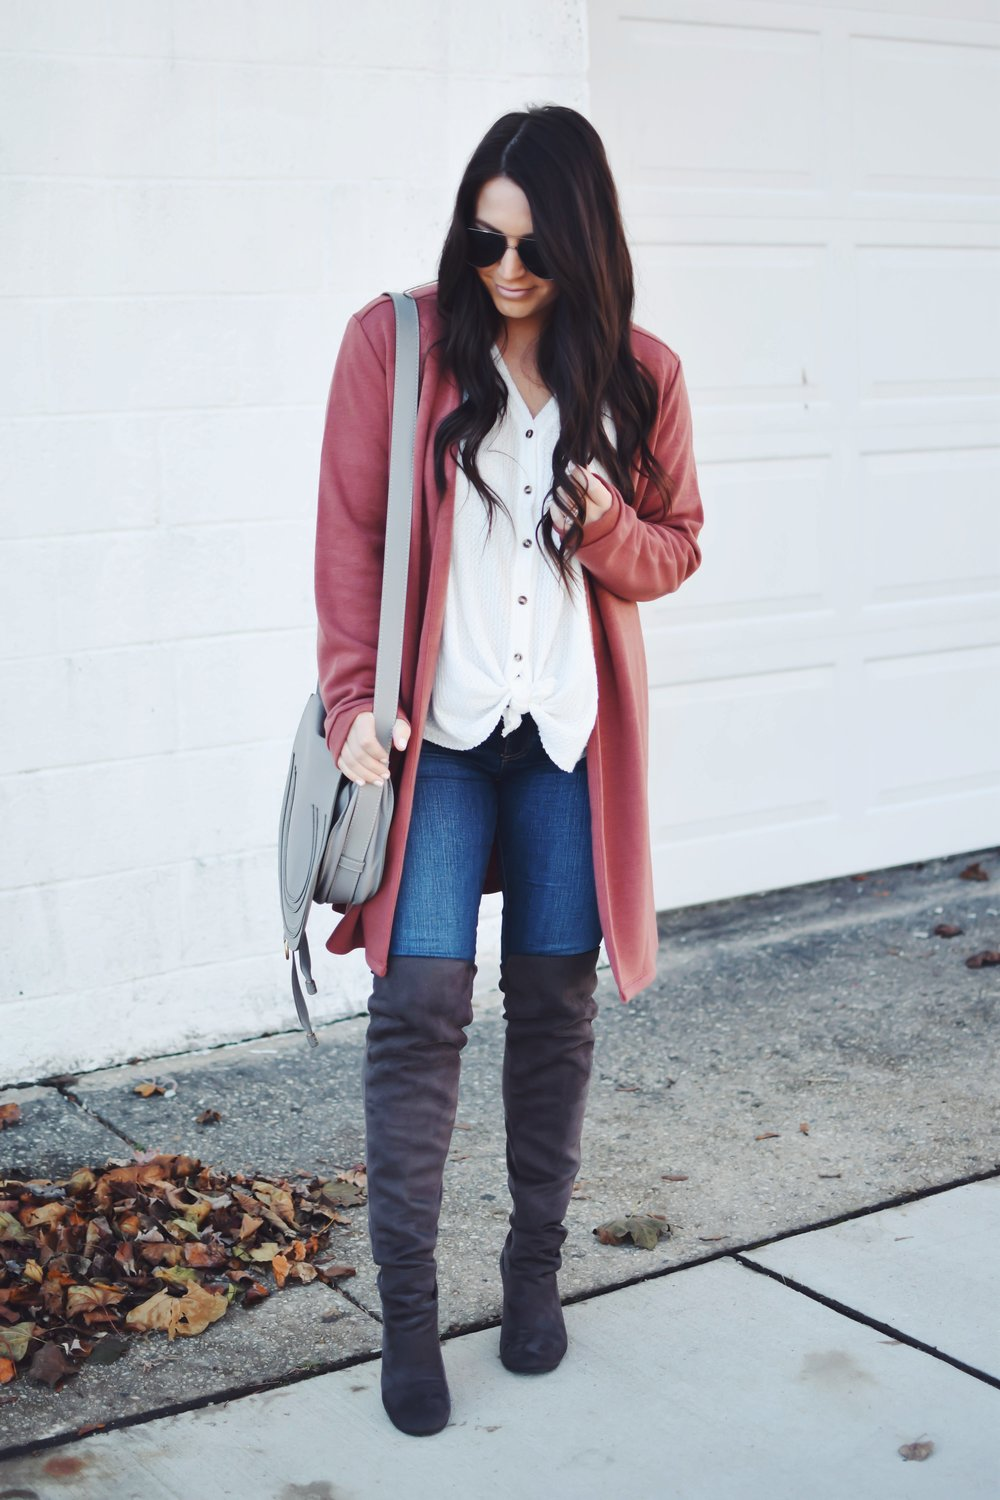 Thanksgiving Outfit Idea | Pine Barren Beauty | gentle fawn cardigan, urban outfitters thermal, ag jeans, over the knee boots, fall outfit idea, fall outfit inspiration